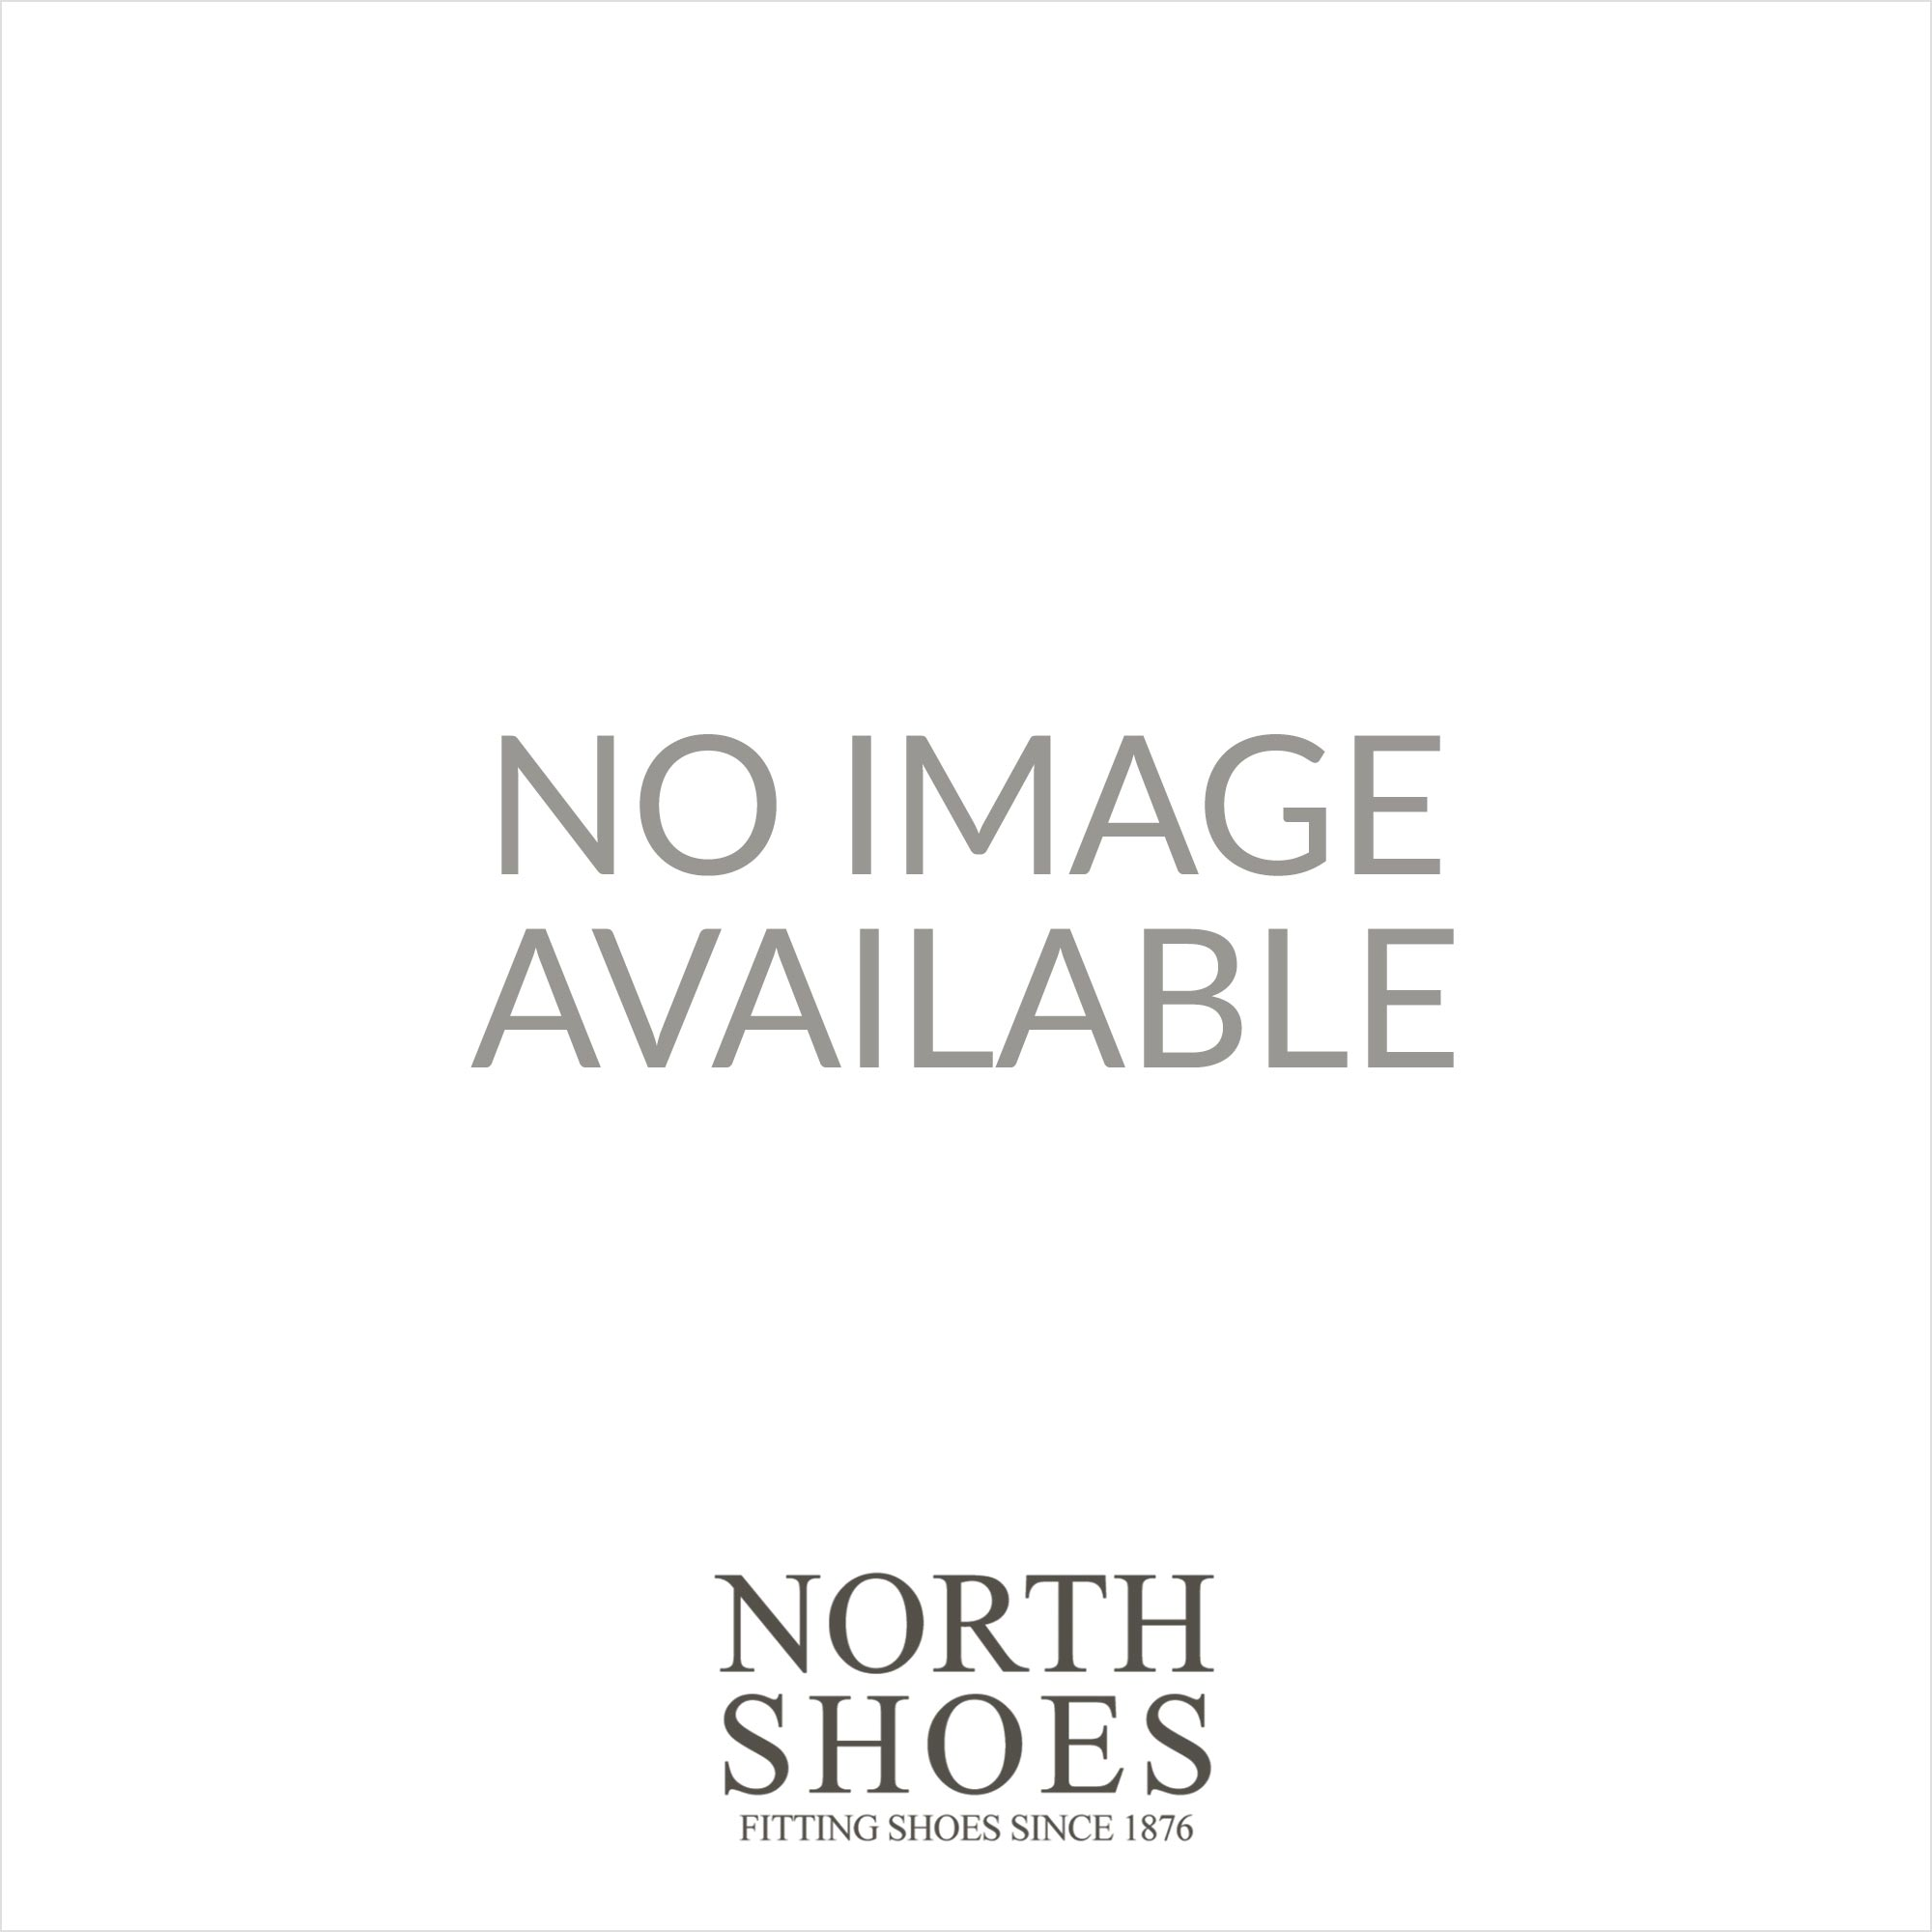 088d3a0cc63 ... Clarks Preppy Edge Black Leather Girls Slip On Loafer School Shoes ...